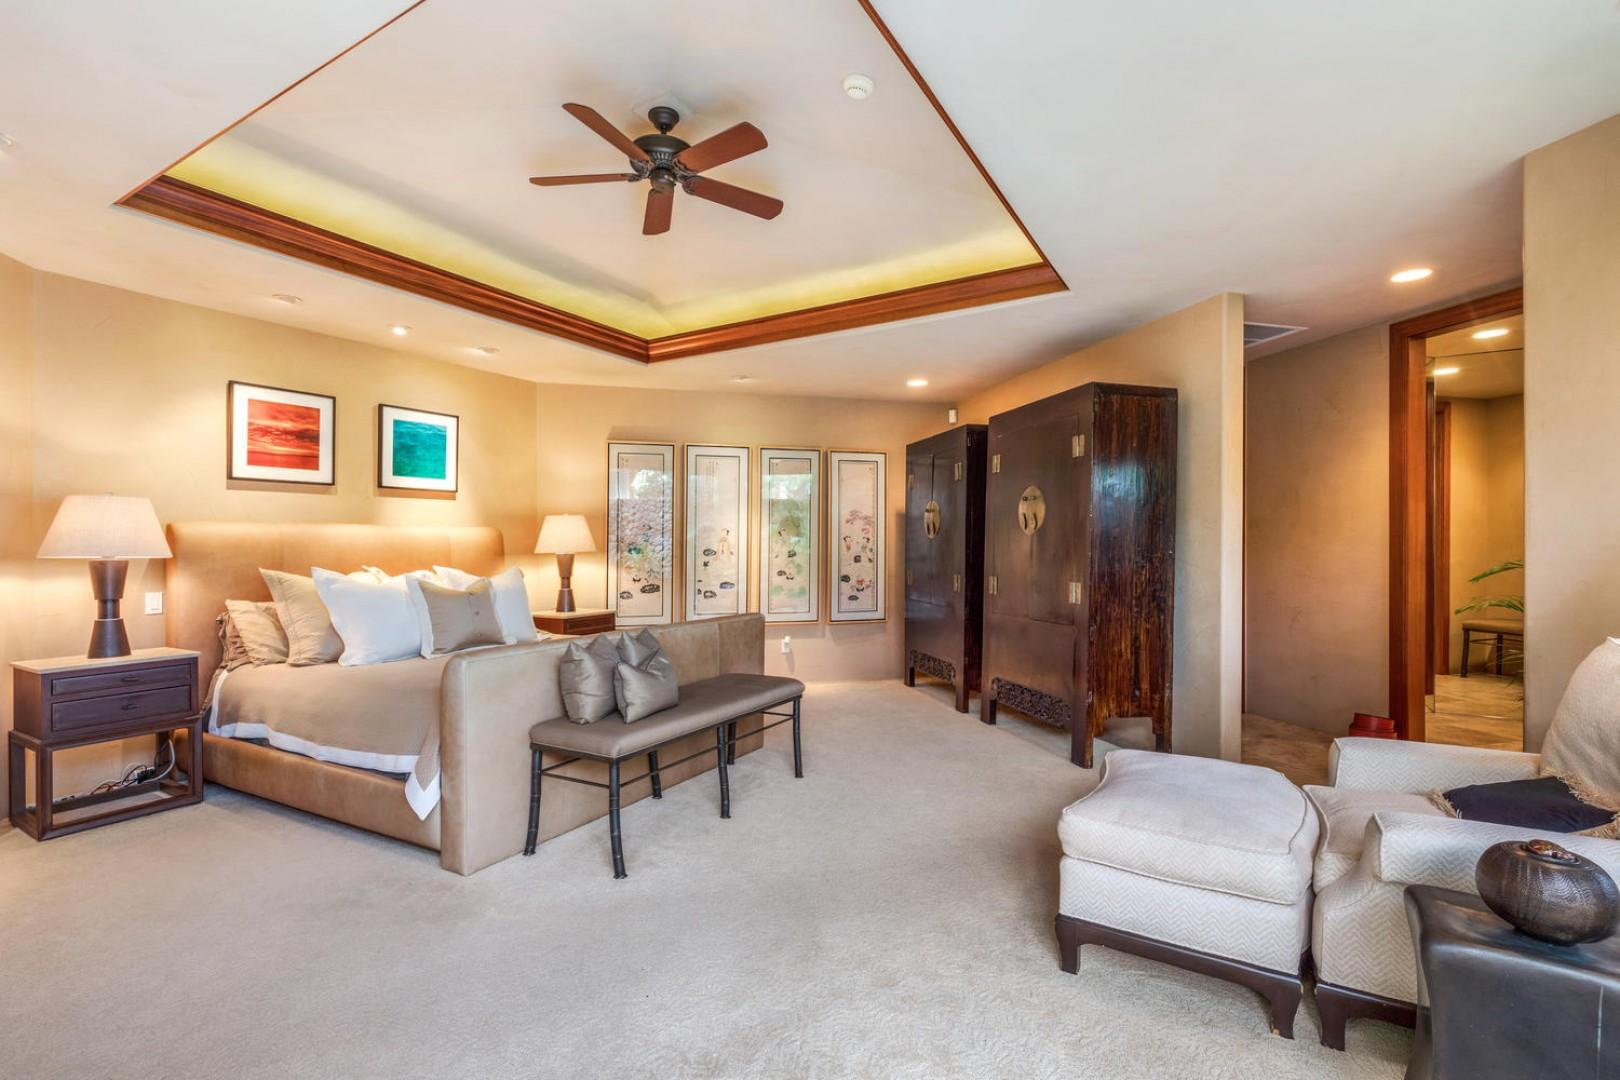 Master bedroom suite with valance ceiling and seating area.